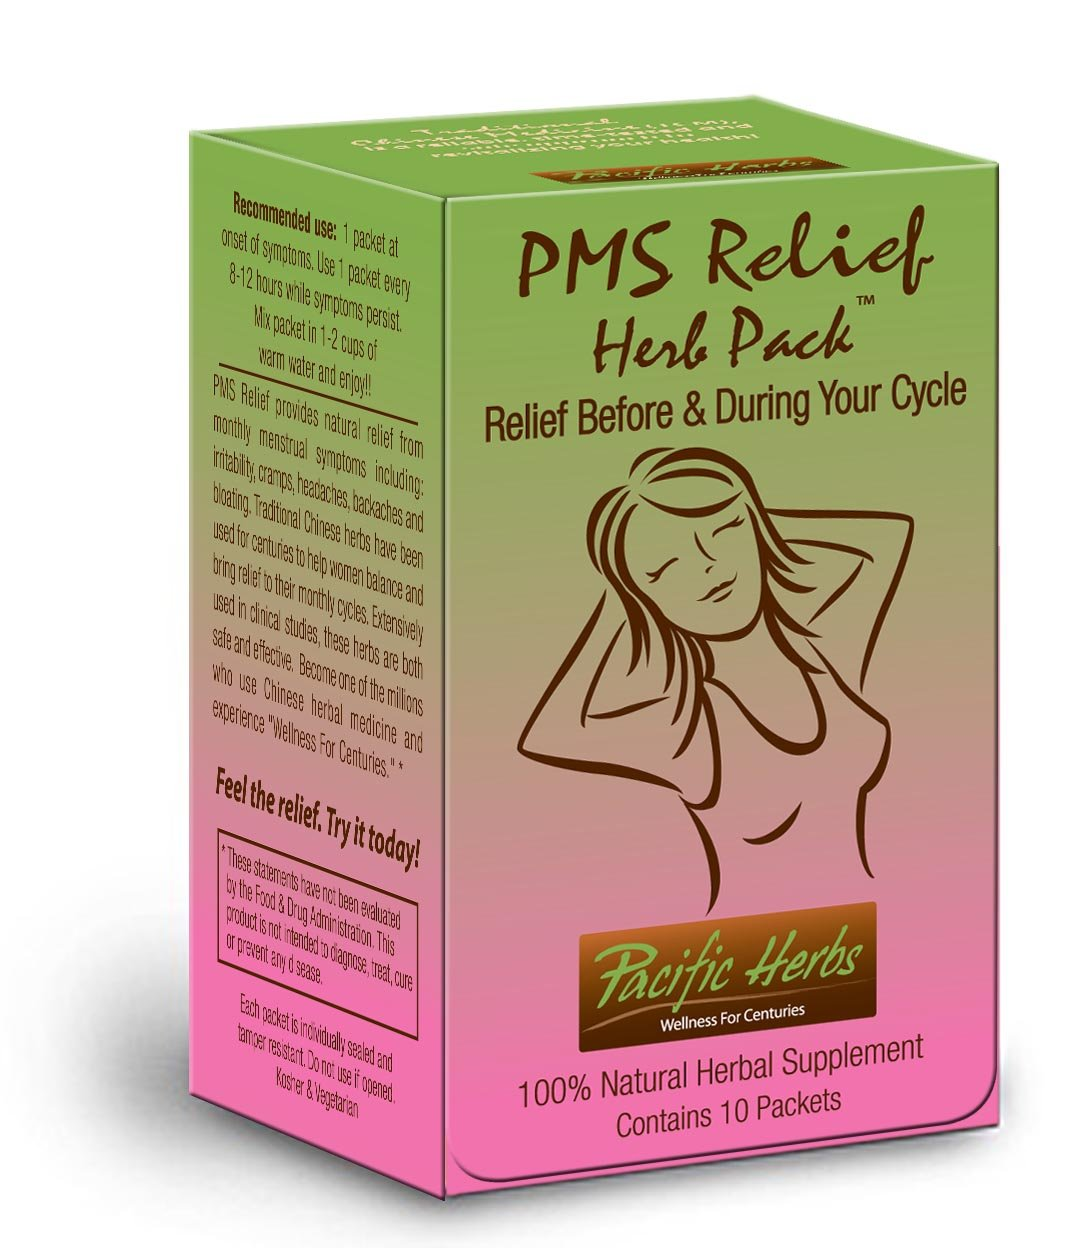 PMS Relief Herb Pack Natural Period Cramp Remedy - 10 Packet Box - Alternative Pain Relief - Use 1-2 packets per month for Cramps, Headaches, Bloating, Moodiness, Backache